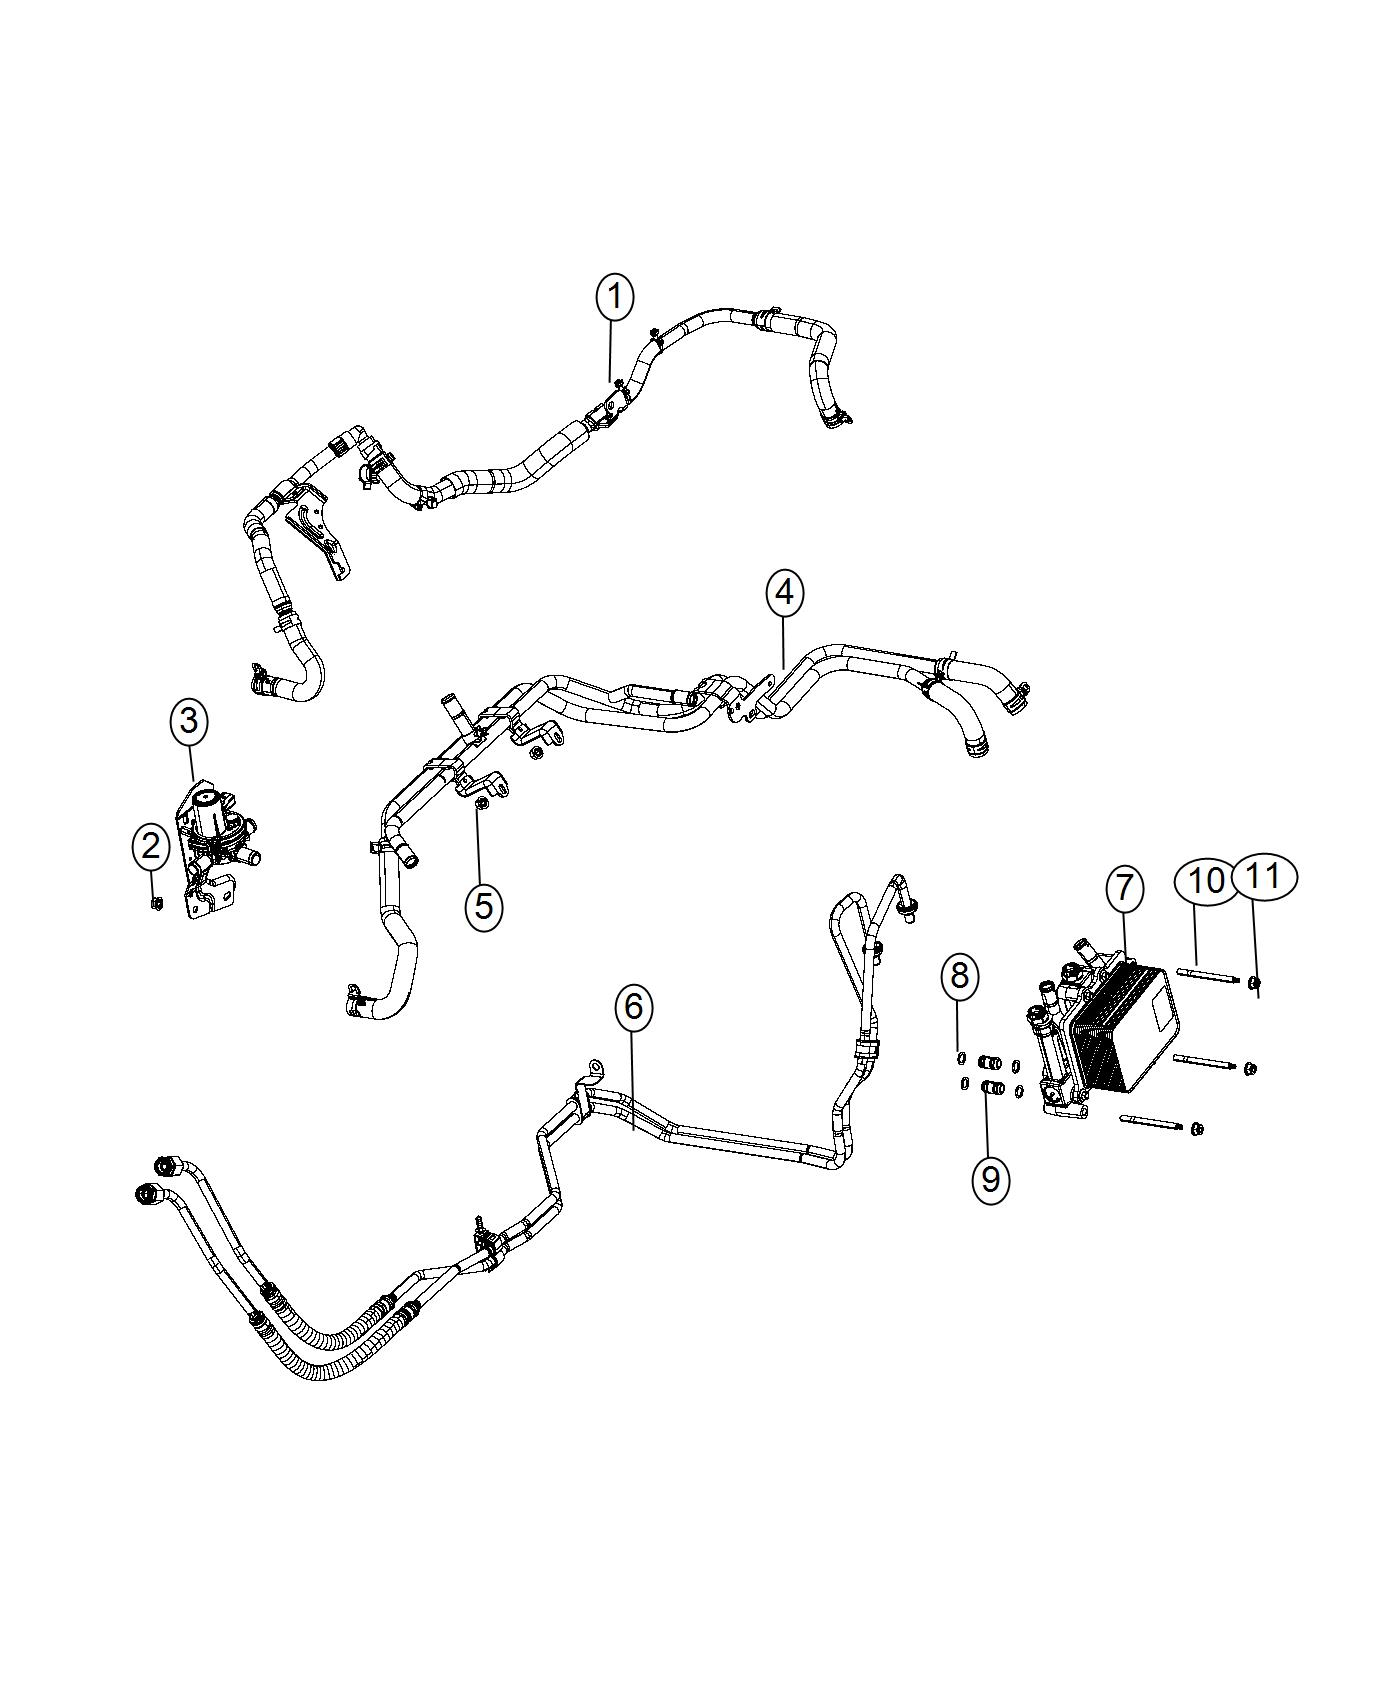 2013 Dodge Ram 1500 Hose And Tube  Oil Cooler Pressure And